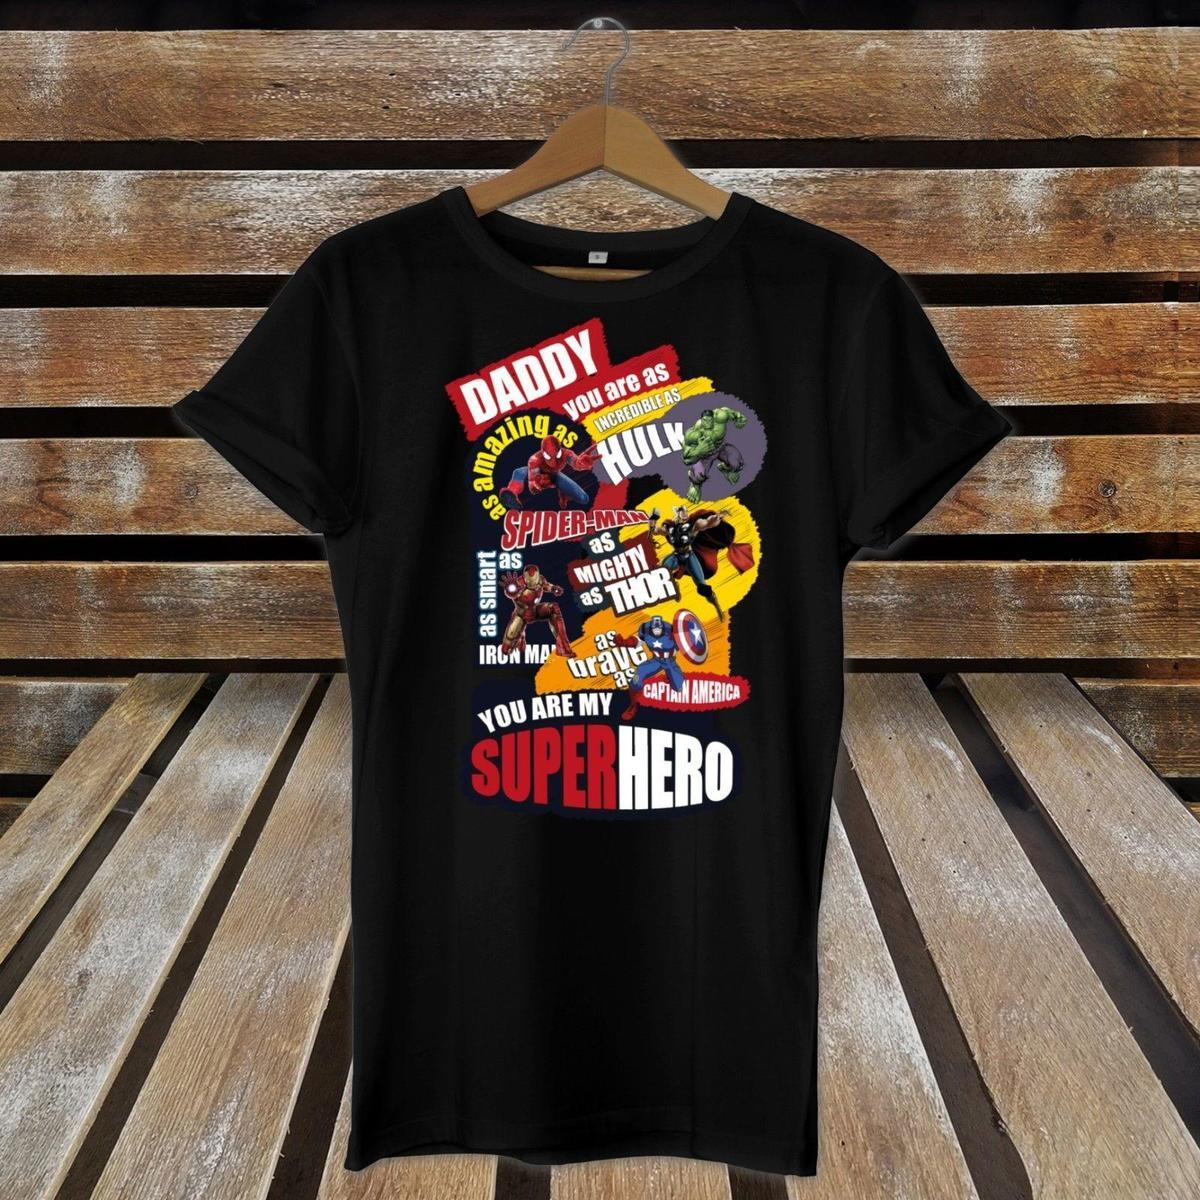 86582b3e Daddy You Are MY Favourite Superhero COMIC Book Printed Fathers Day T Shirt  Gift Fun T Shirts Online Tshirt And Shirt From Linnan09, $14.67| DHgate.Com